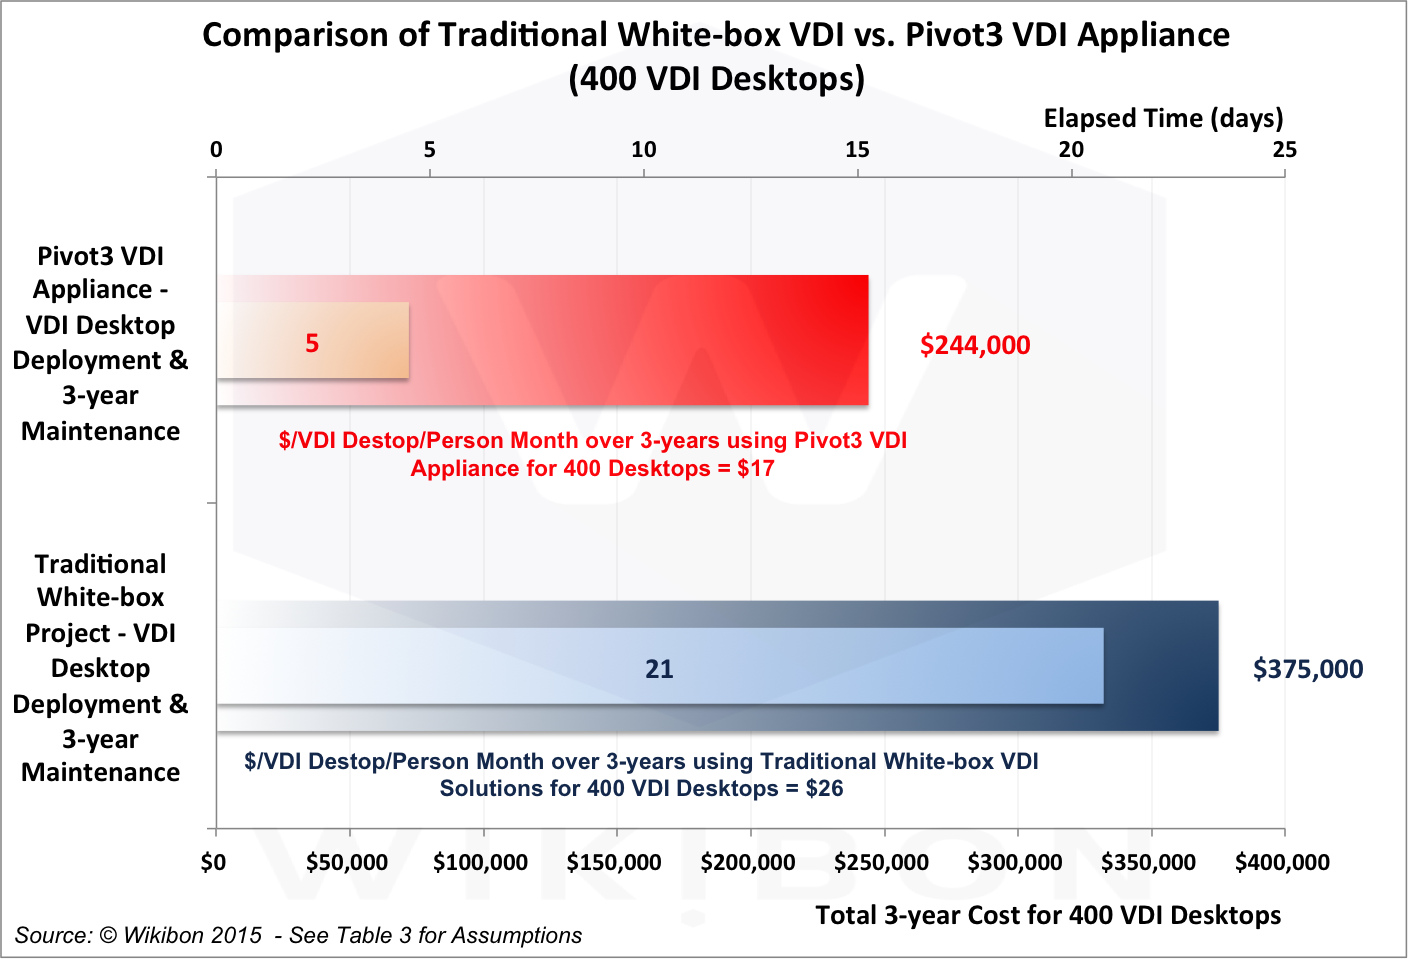 Comparison of Traditional White Box VDI with Pivot3 VDI Appliance (400 VDI Desktops). Source: © Wikibon 2015, based on the assumptions and calculations in Table 3 in the Footnotes, itself derived from Tables 5 & 6 in the Footnotes below.